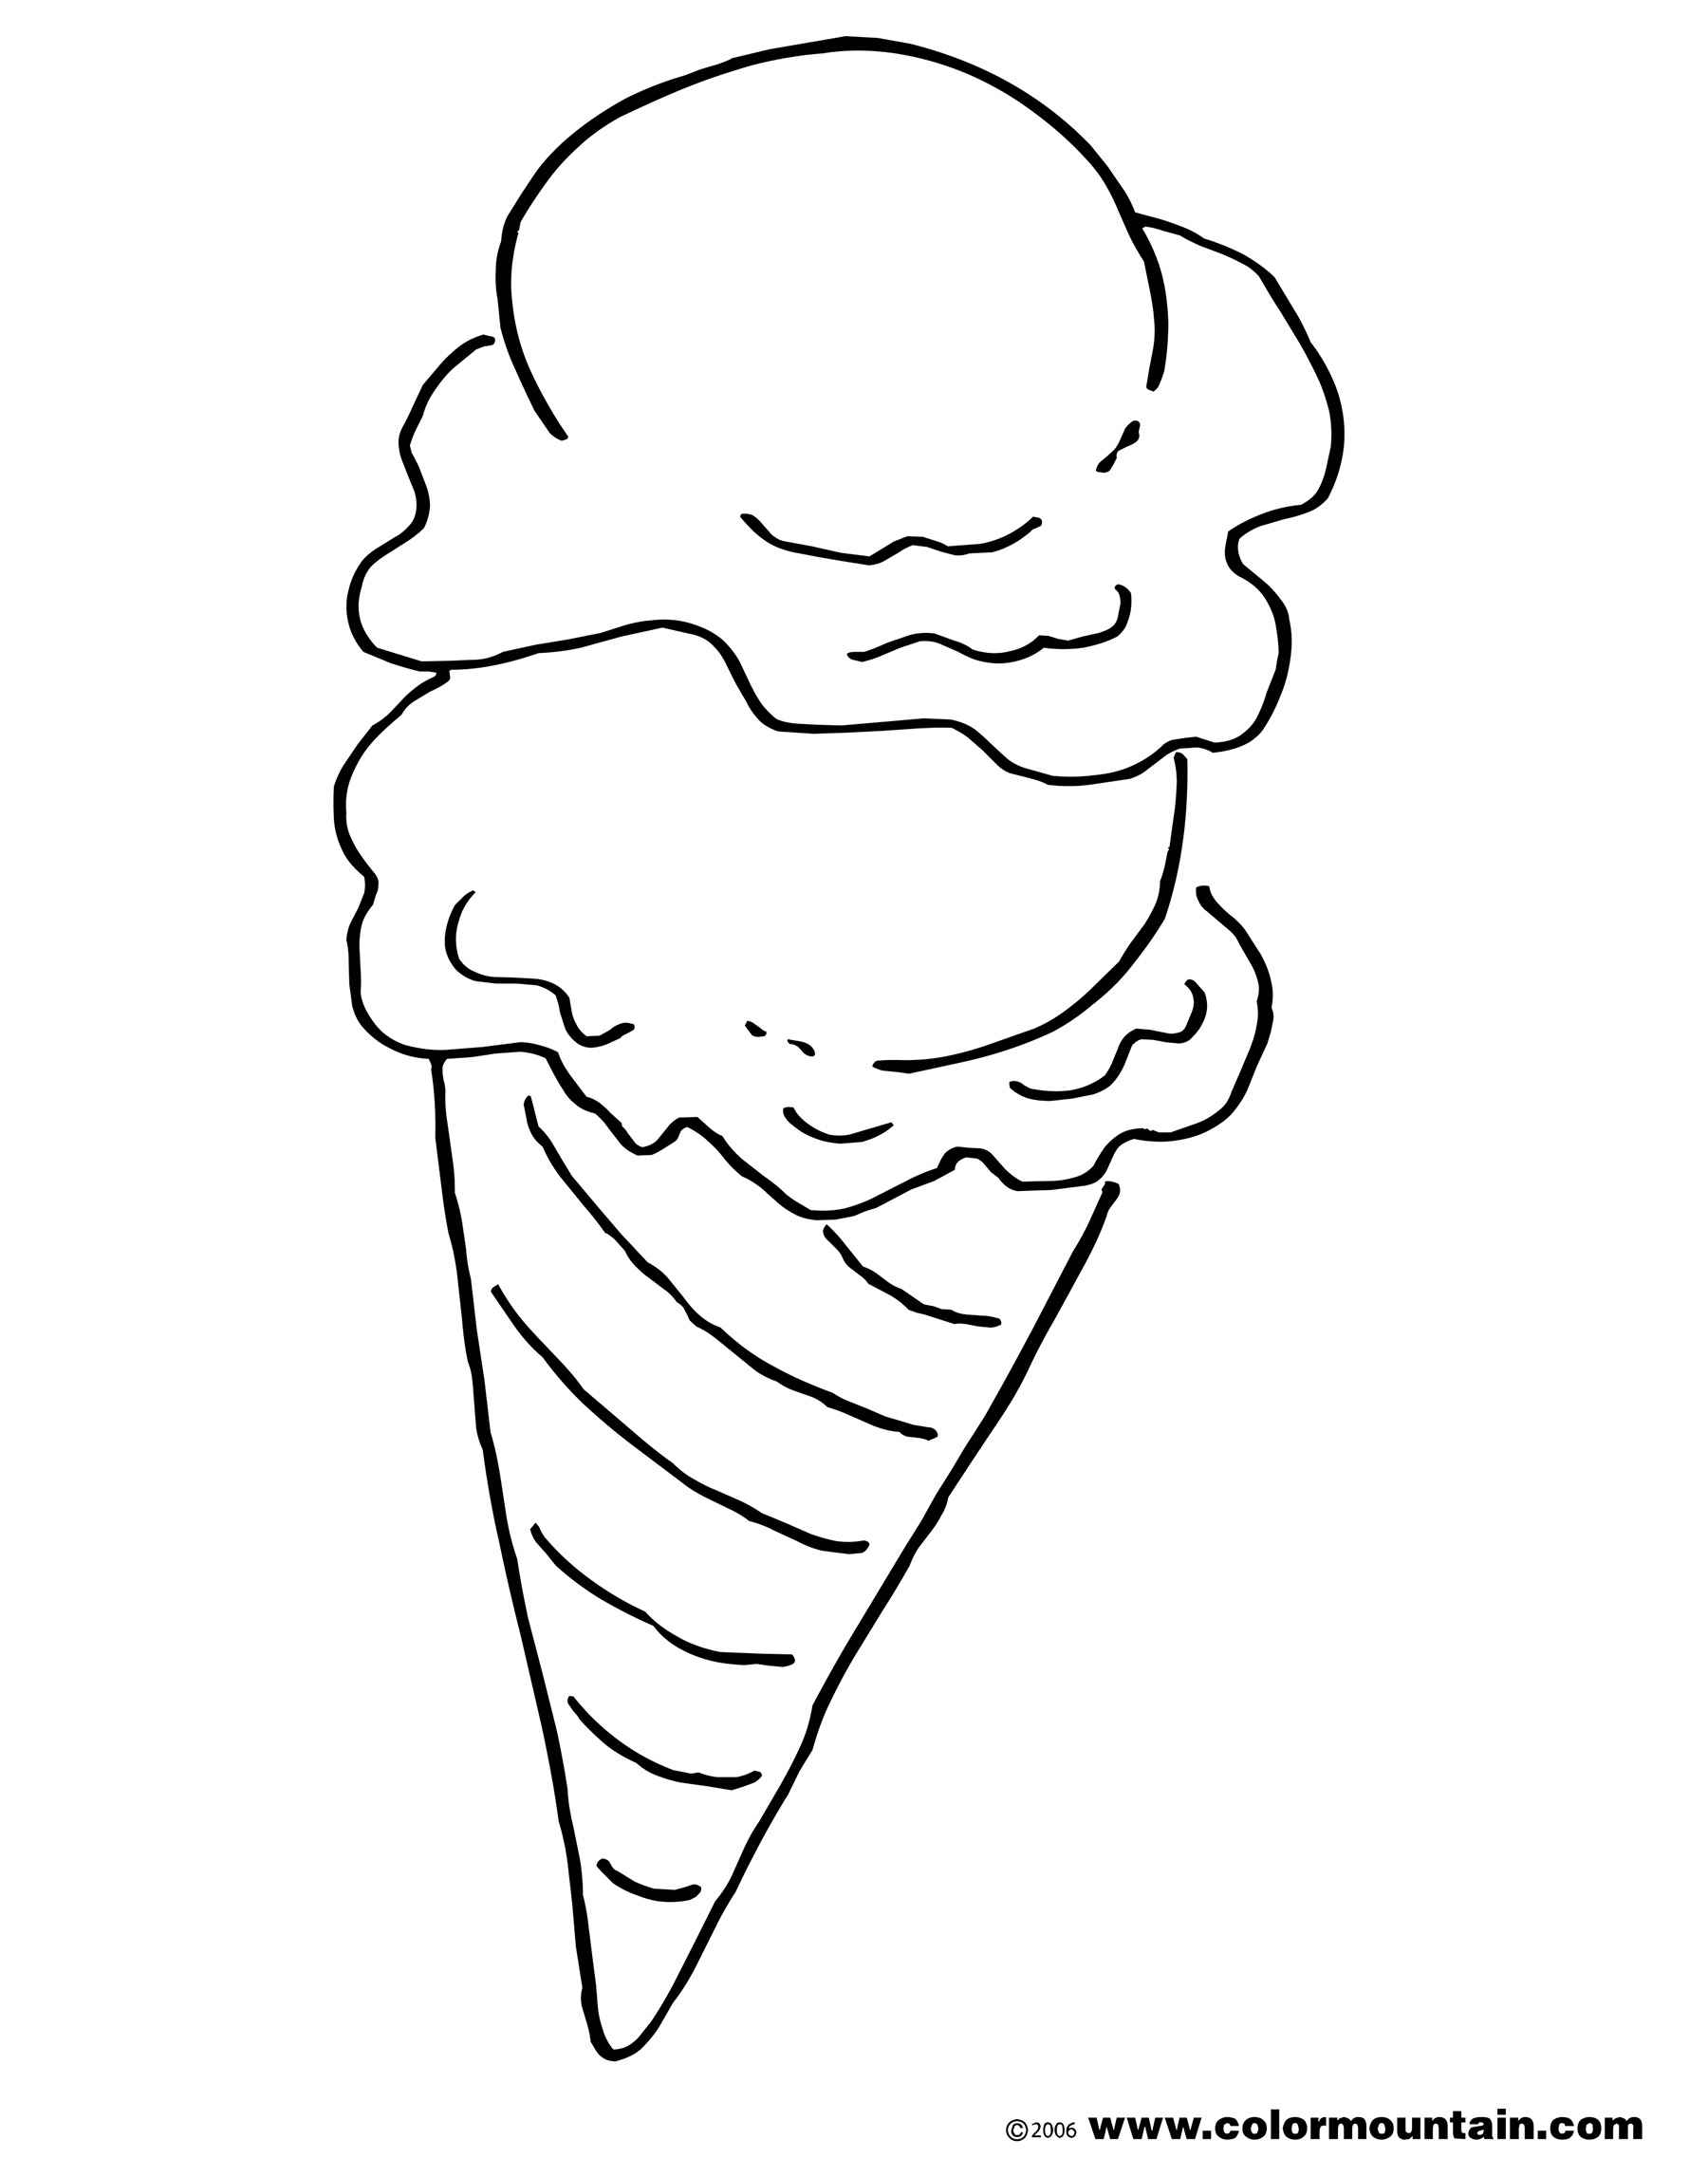 Waffle Cone clipart coloring page Pages Cupcakes Cupcakes ice cone